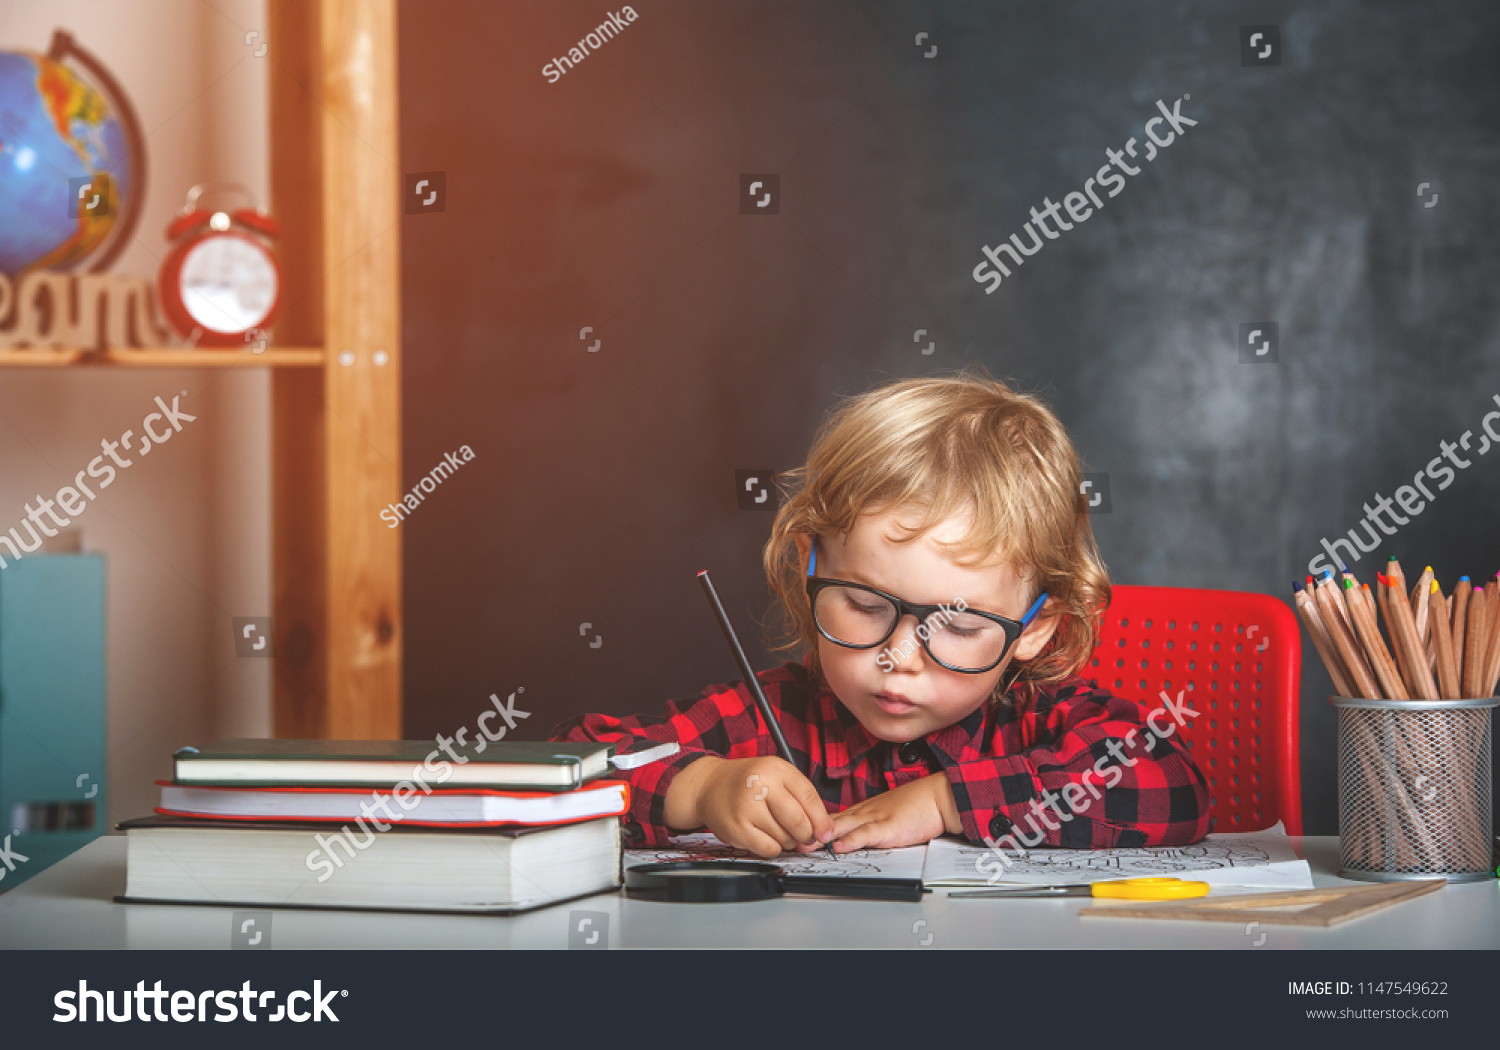 Back to school. Happy smiling pupil drawing at the desk. Child in the class room with blackboard on background. Alarm clock, pencils, books. Kid girl from primary school. first day of fall. #1147549622